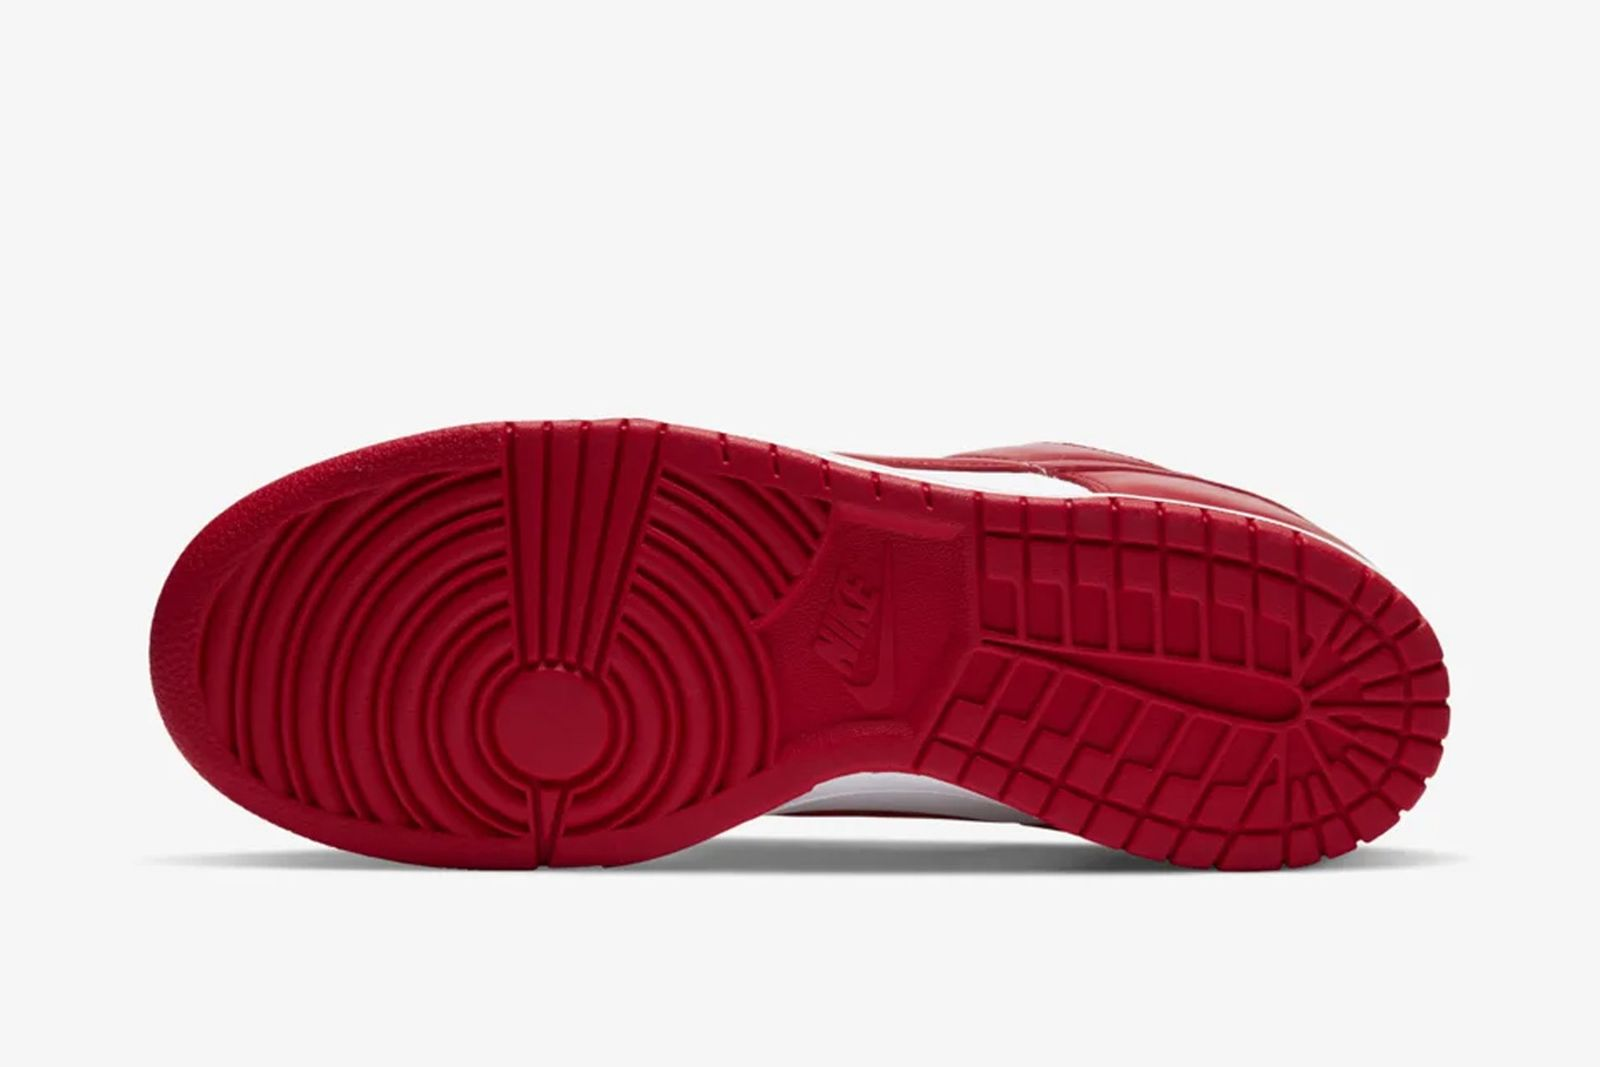 Red and white Nike Dunk Low sole view